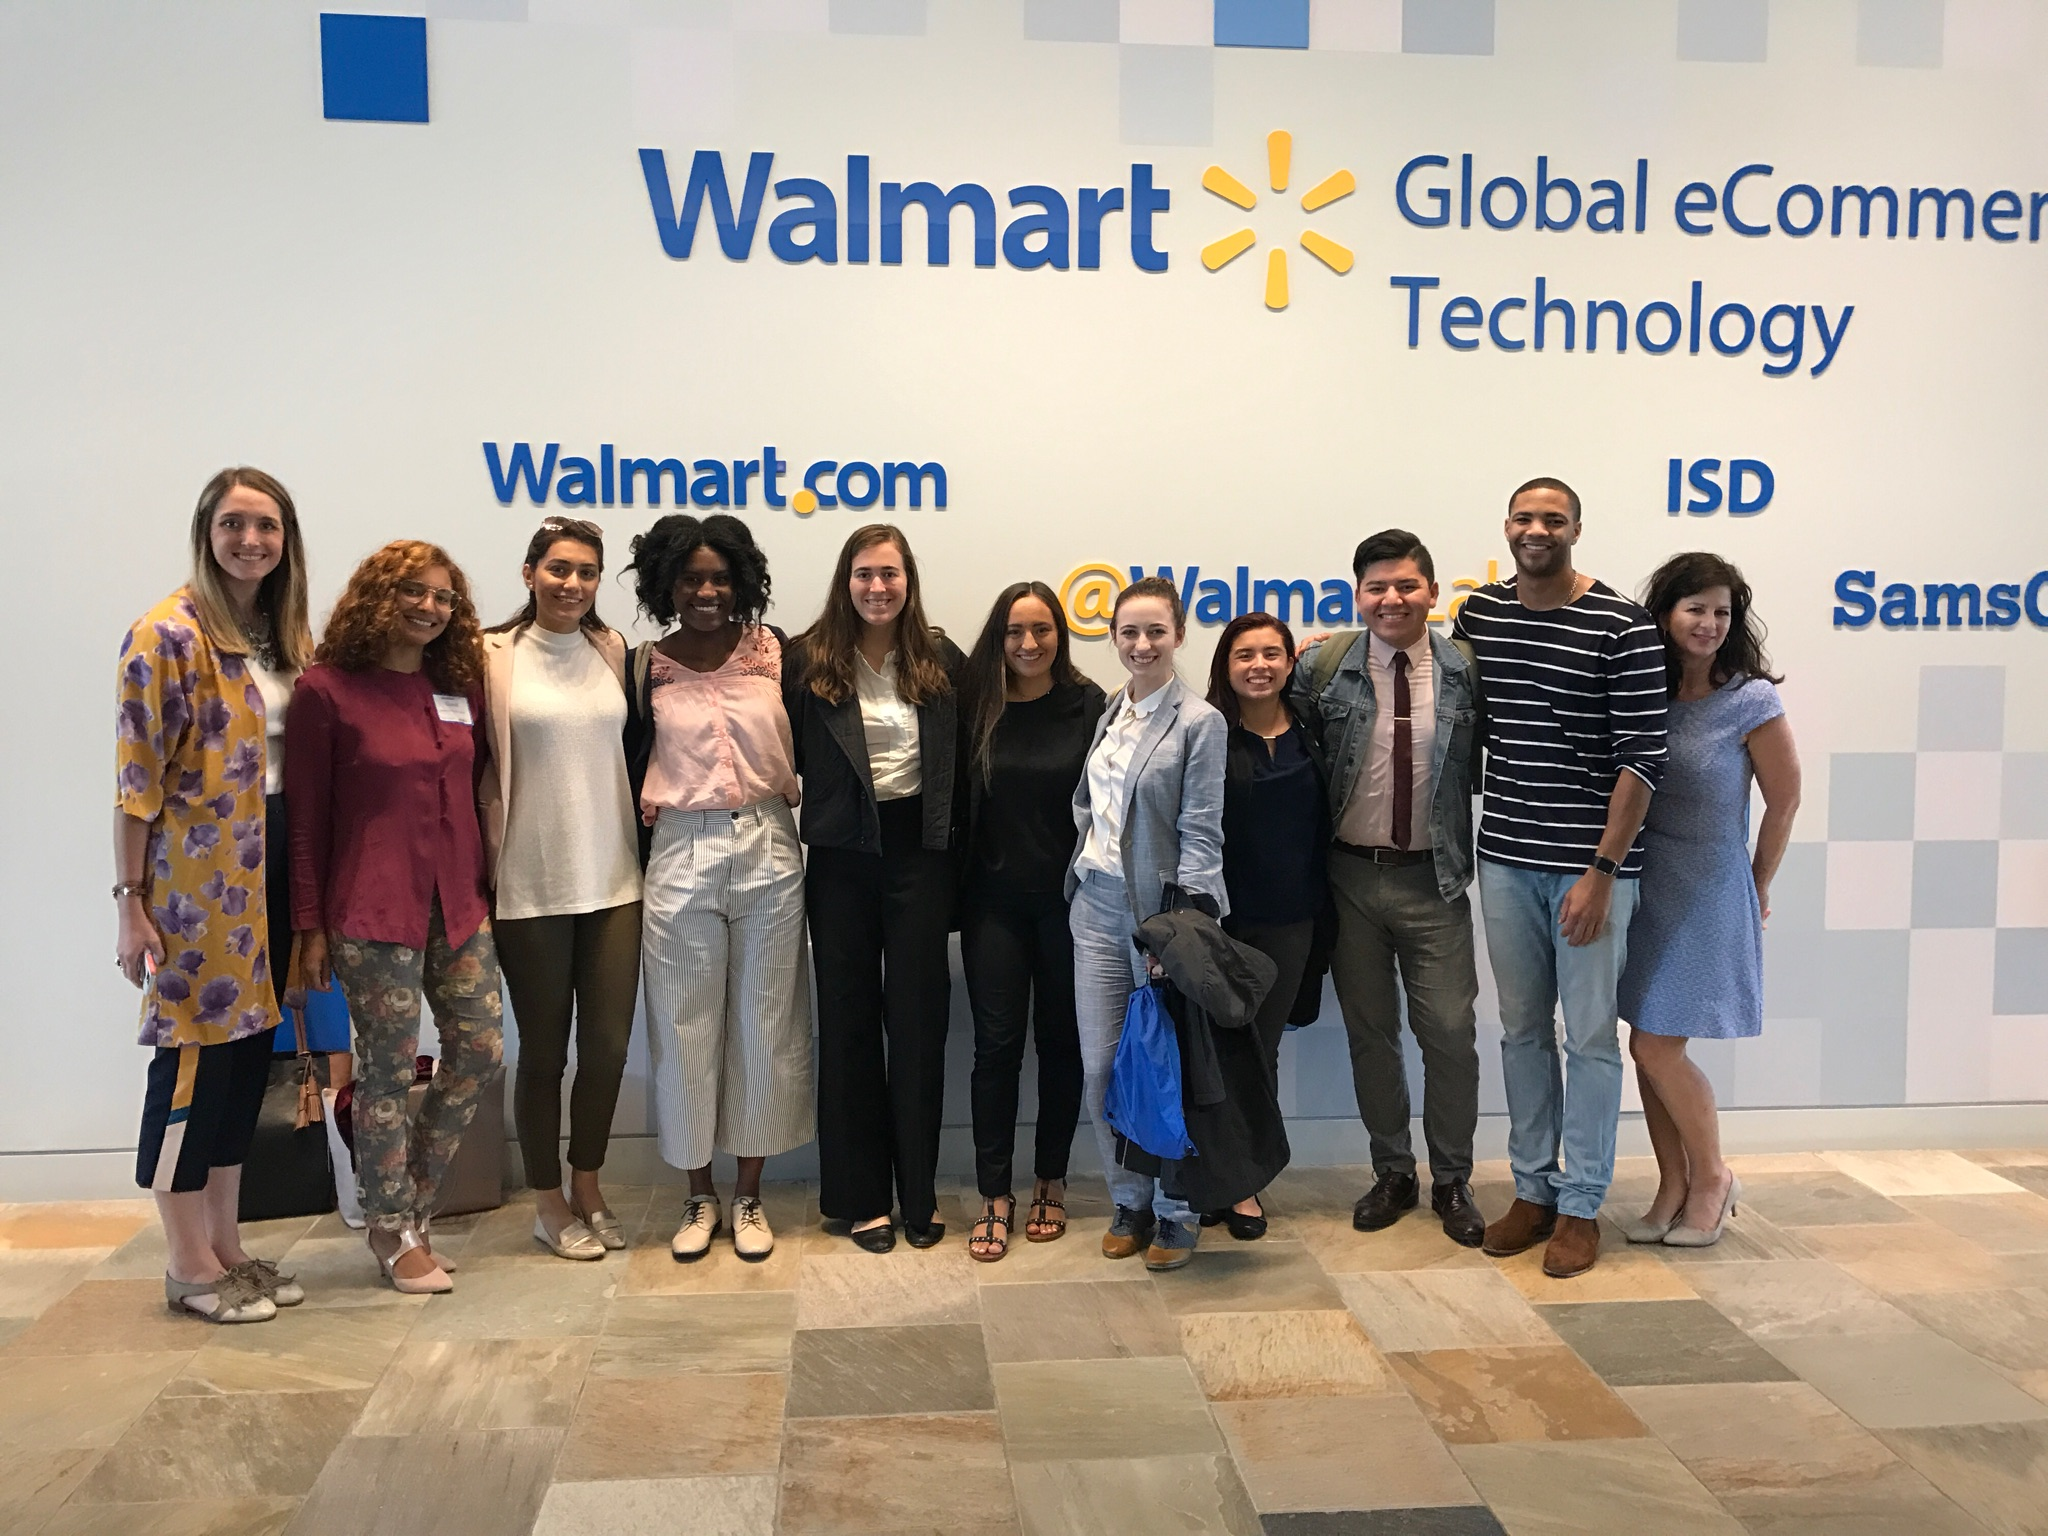 university of north texas; digital study tour; digital retailing degree; walmart.com